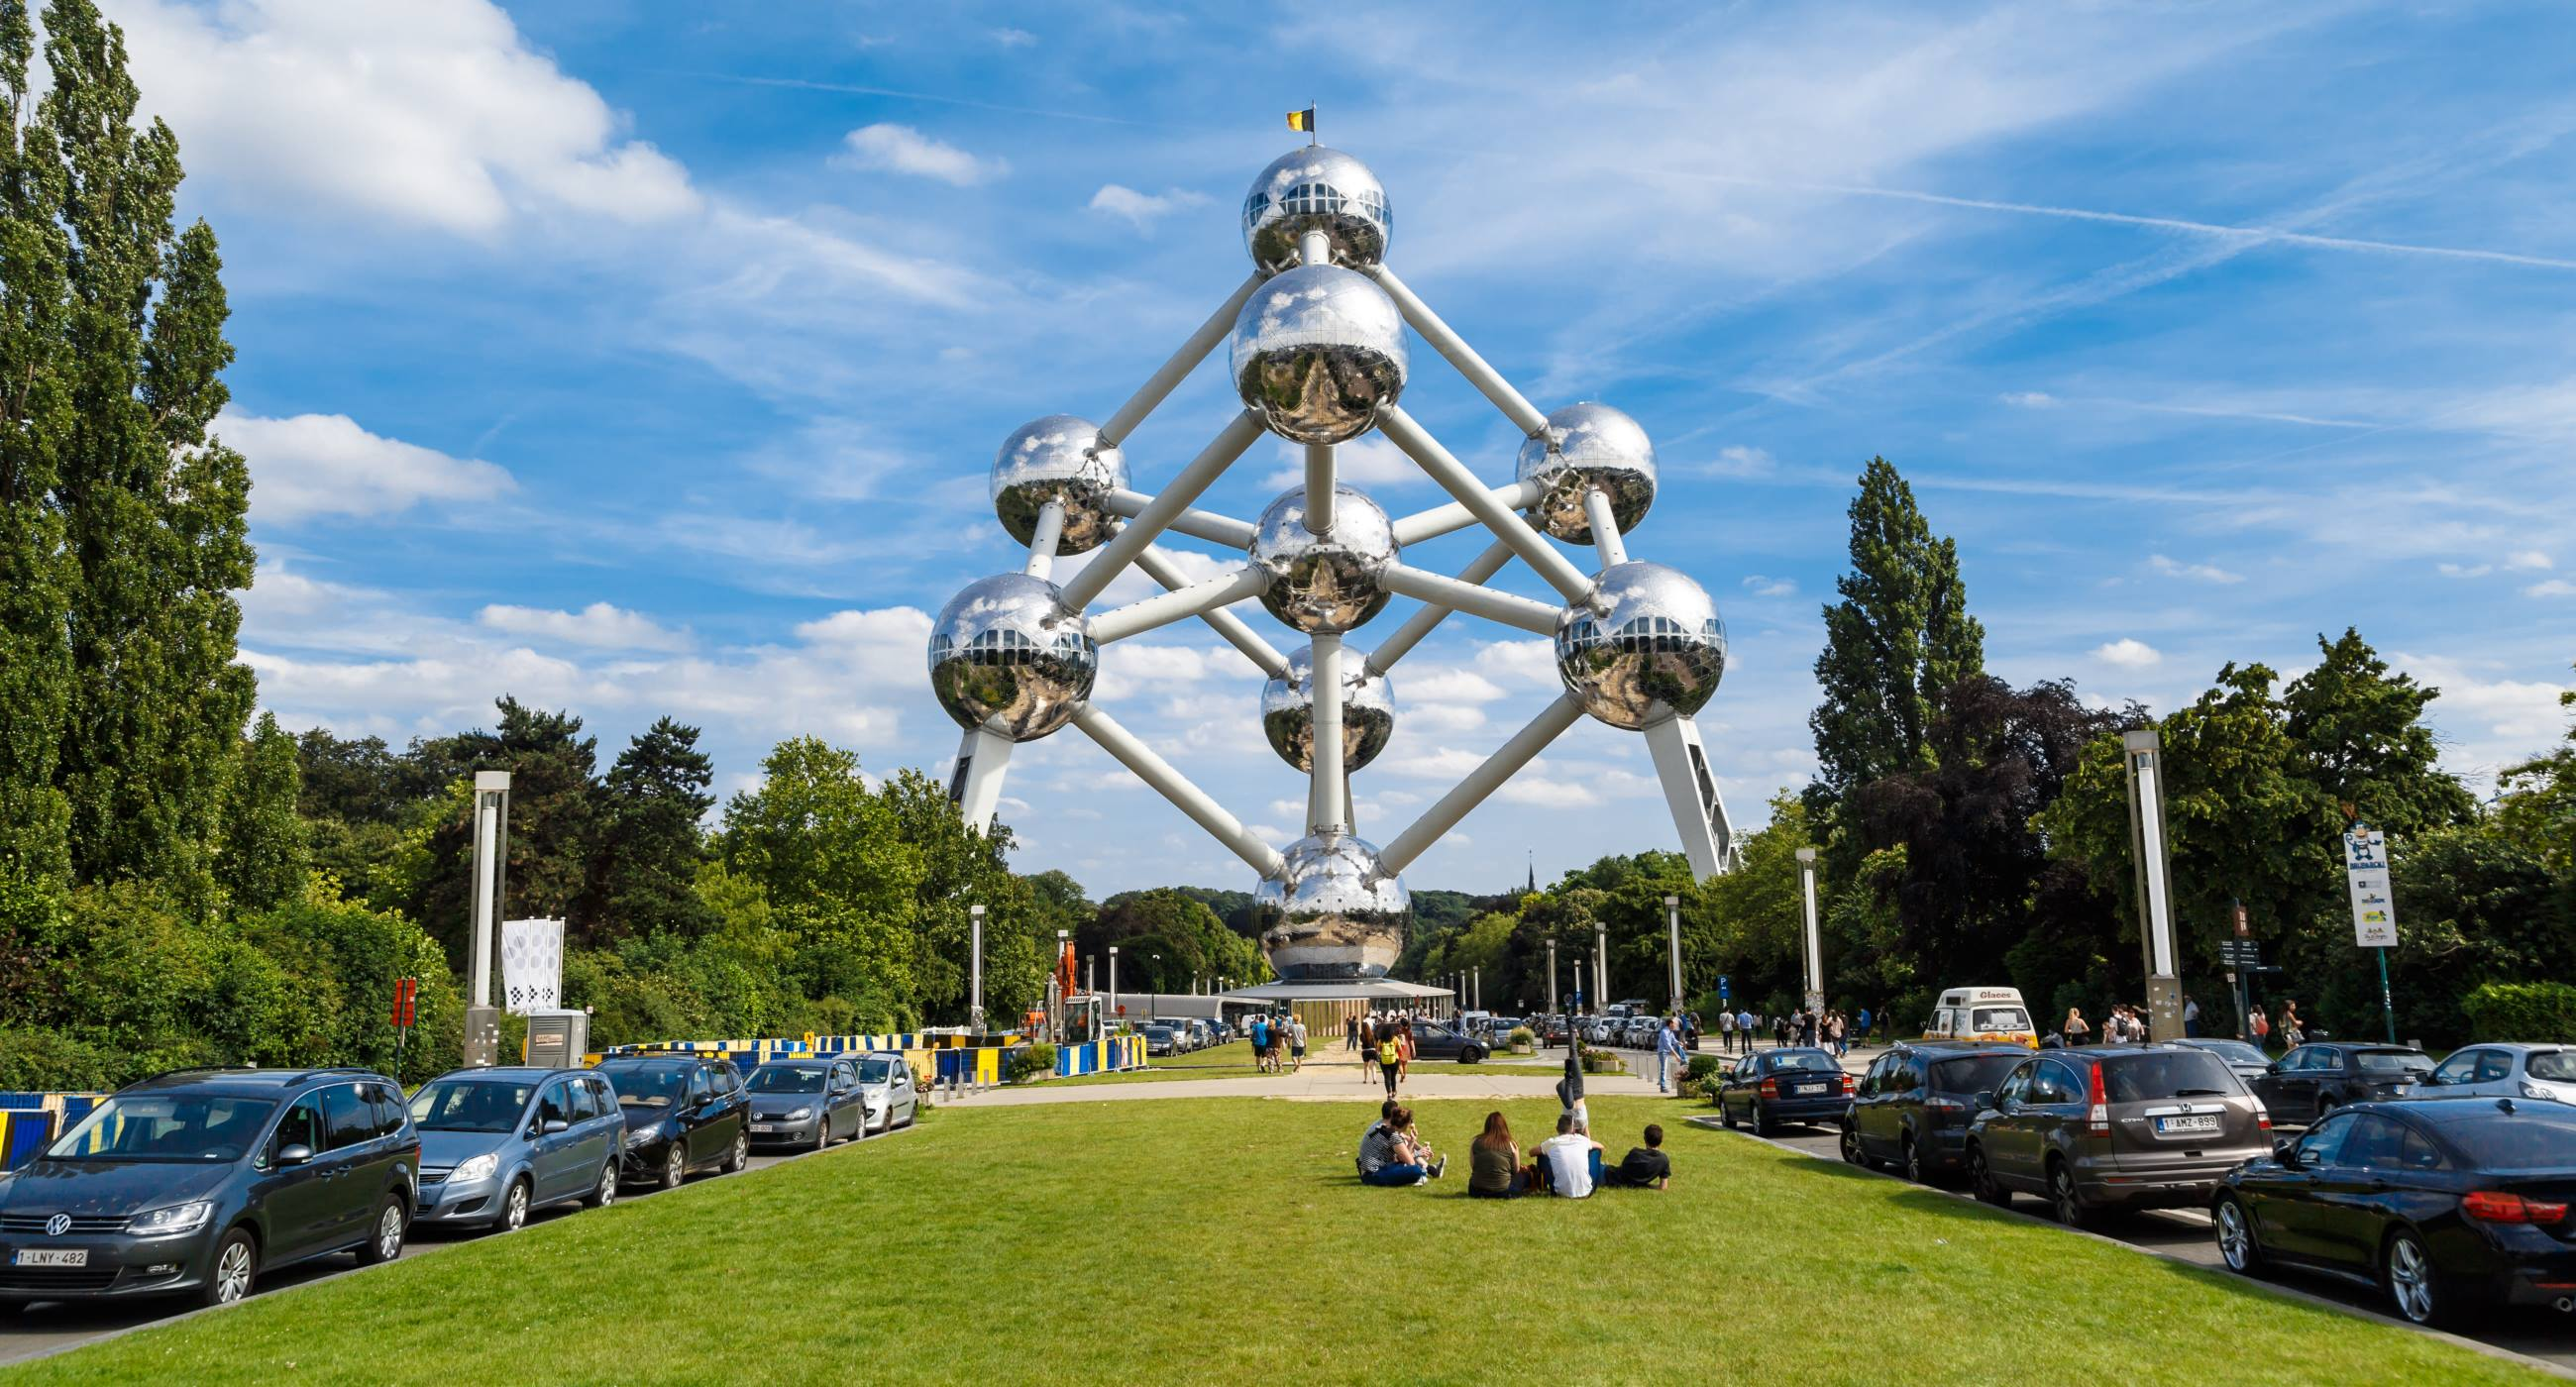 Atomium-structure-of-Belgium-do's-and-don'ts